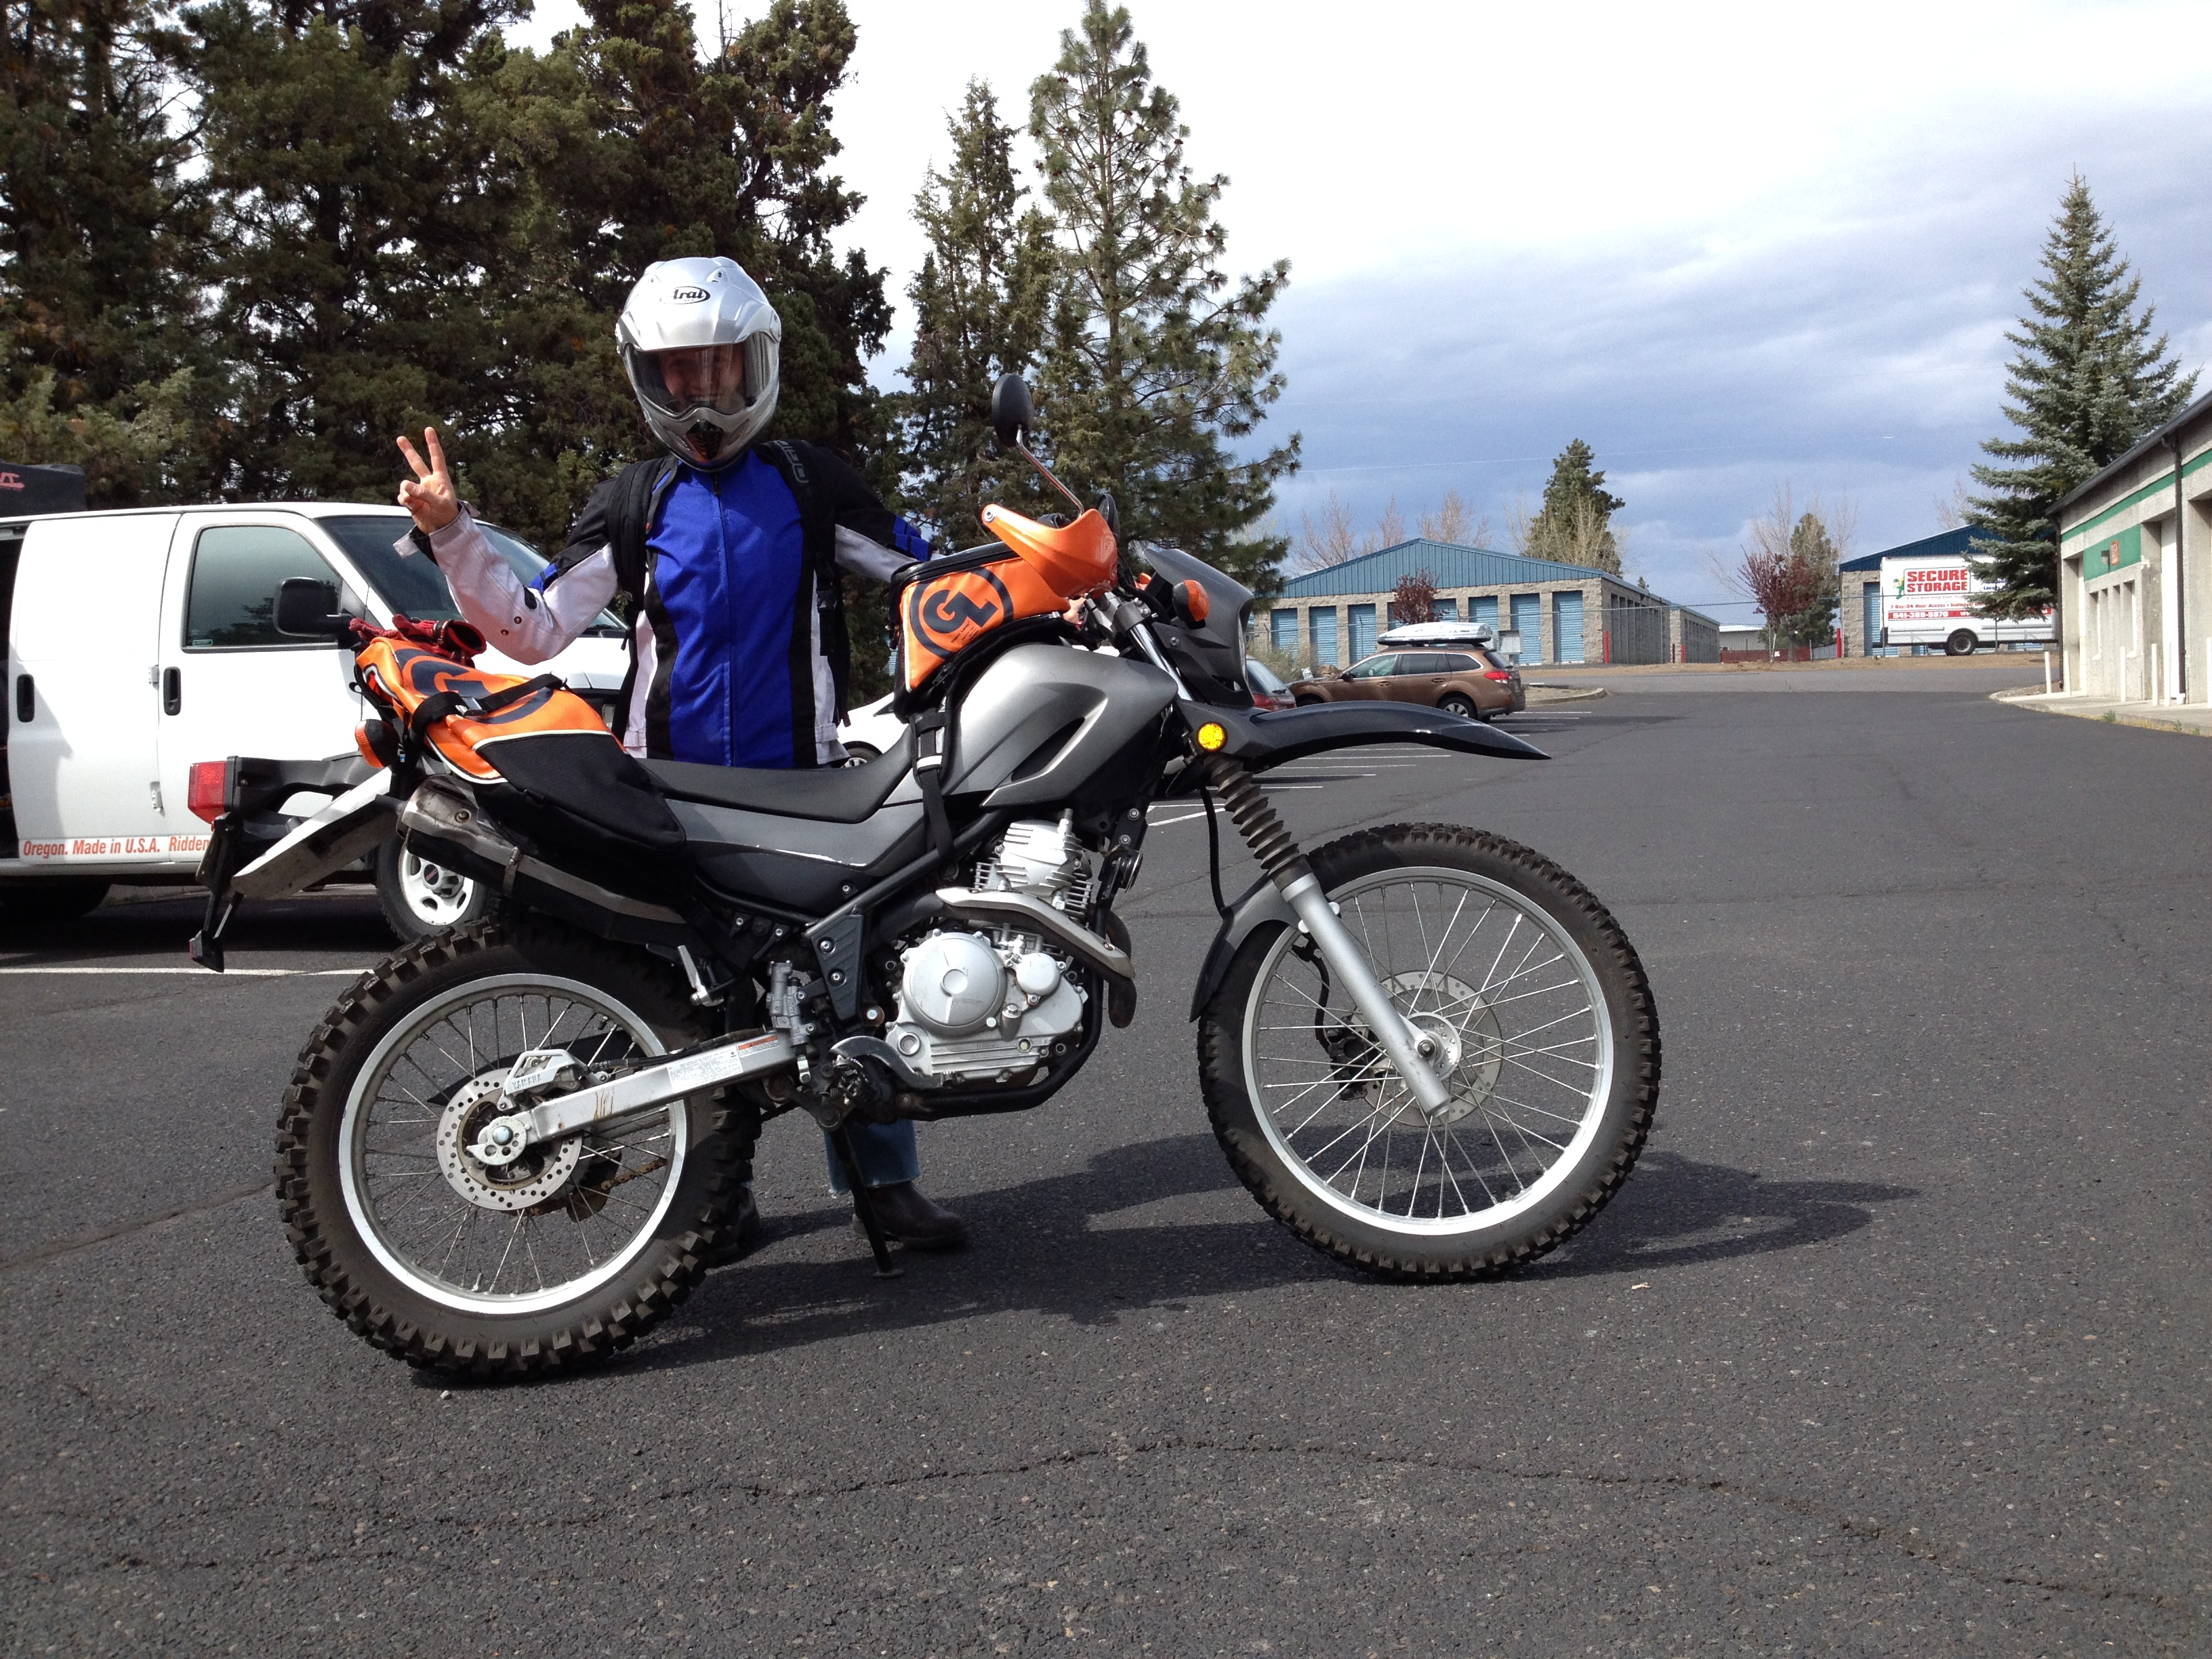 Giant Loop Rider Solana Visits Gl With Her Yamaha Xt250